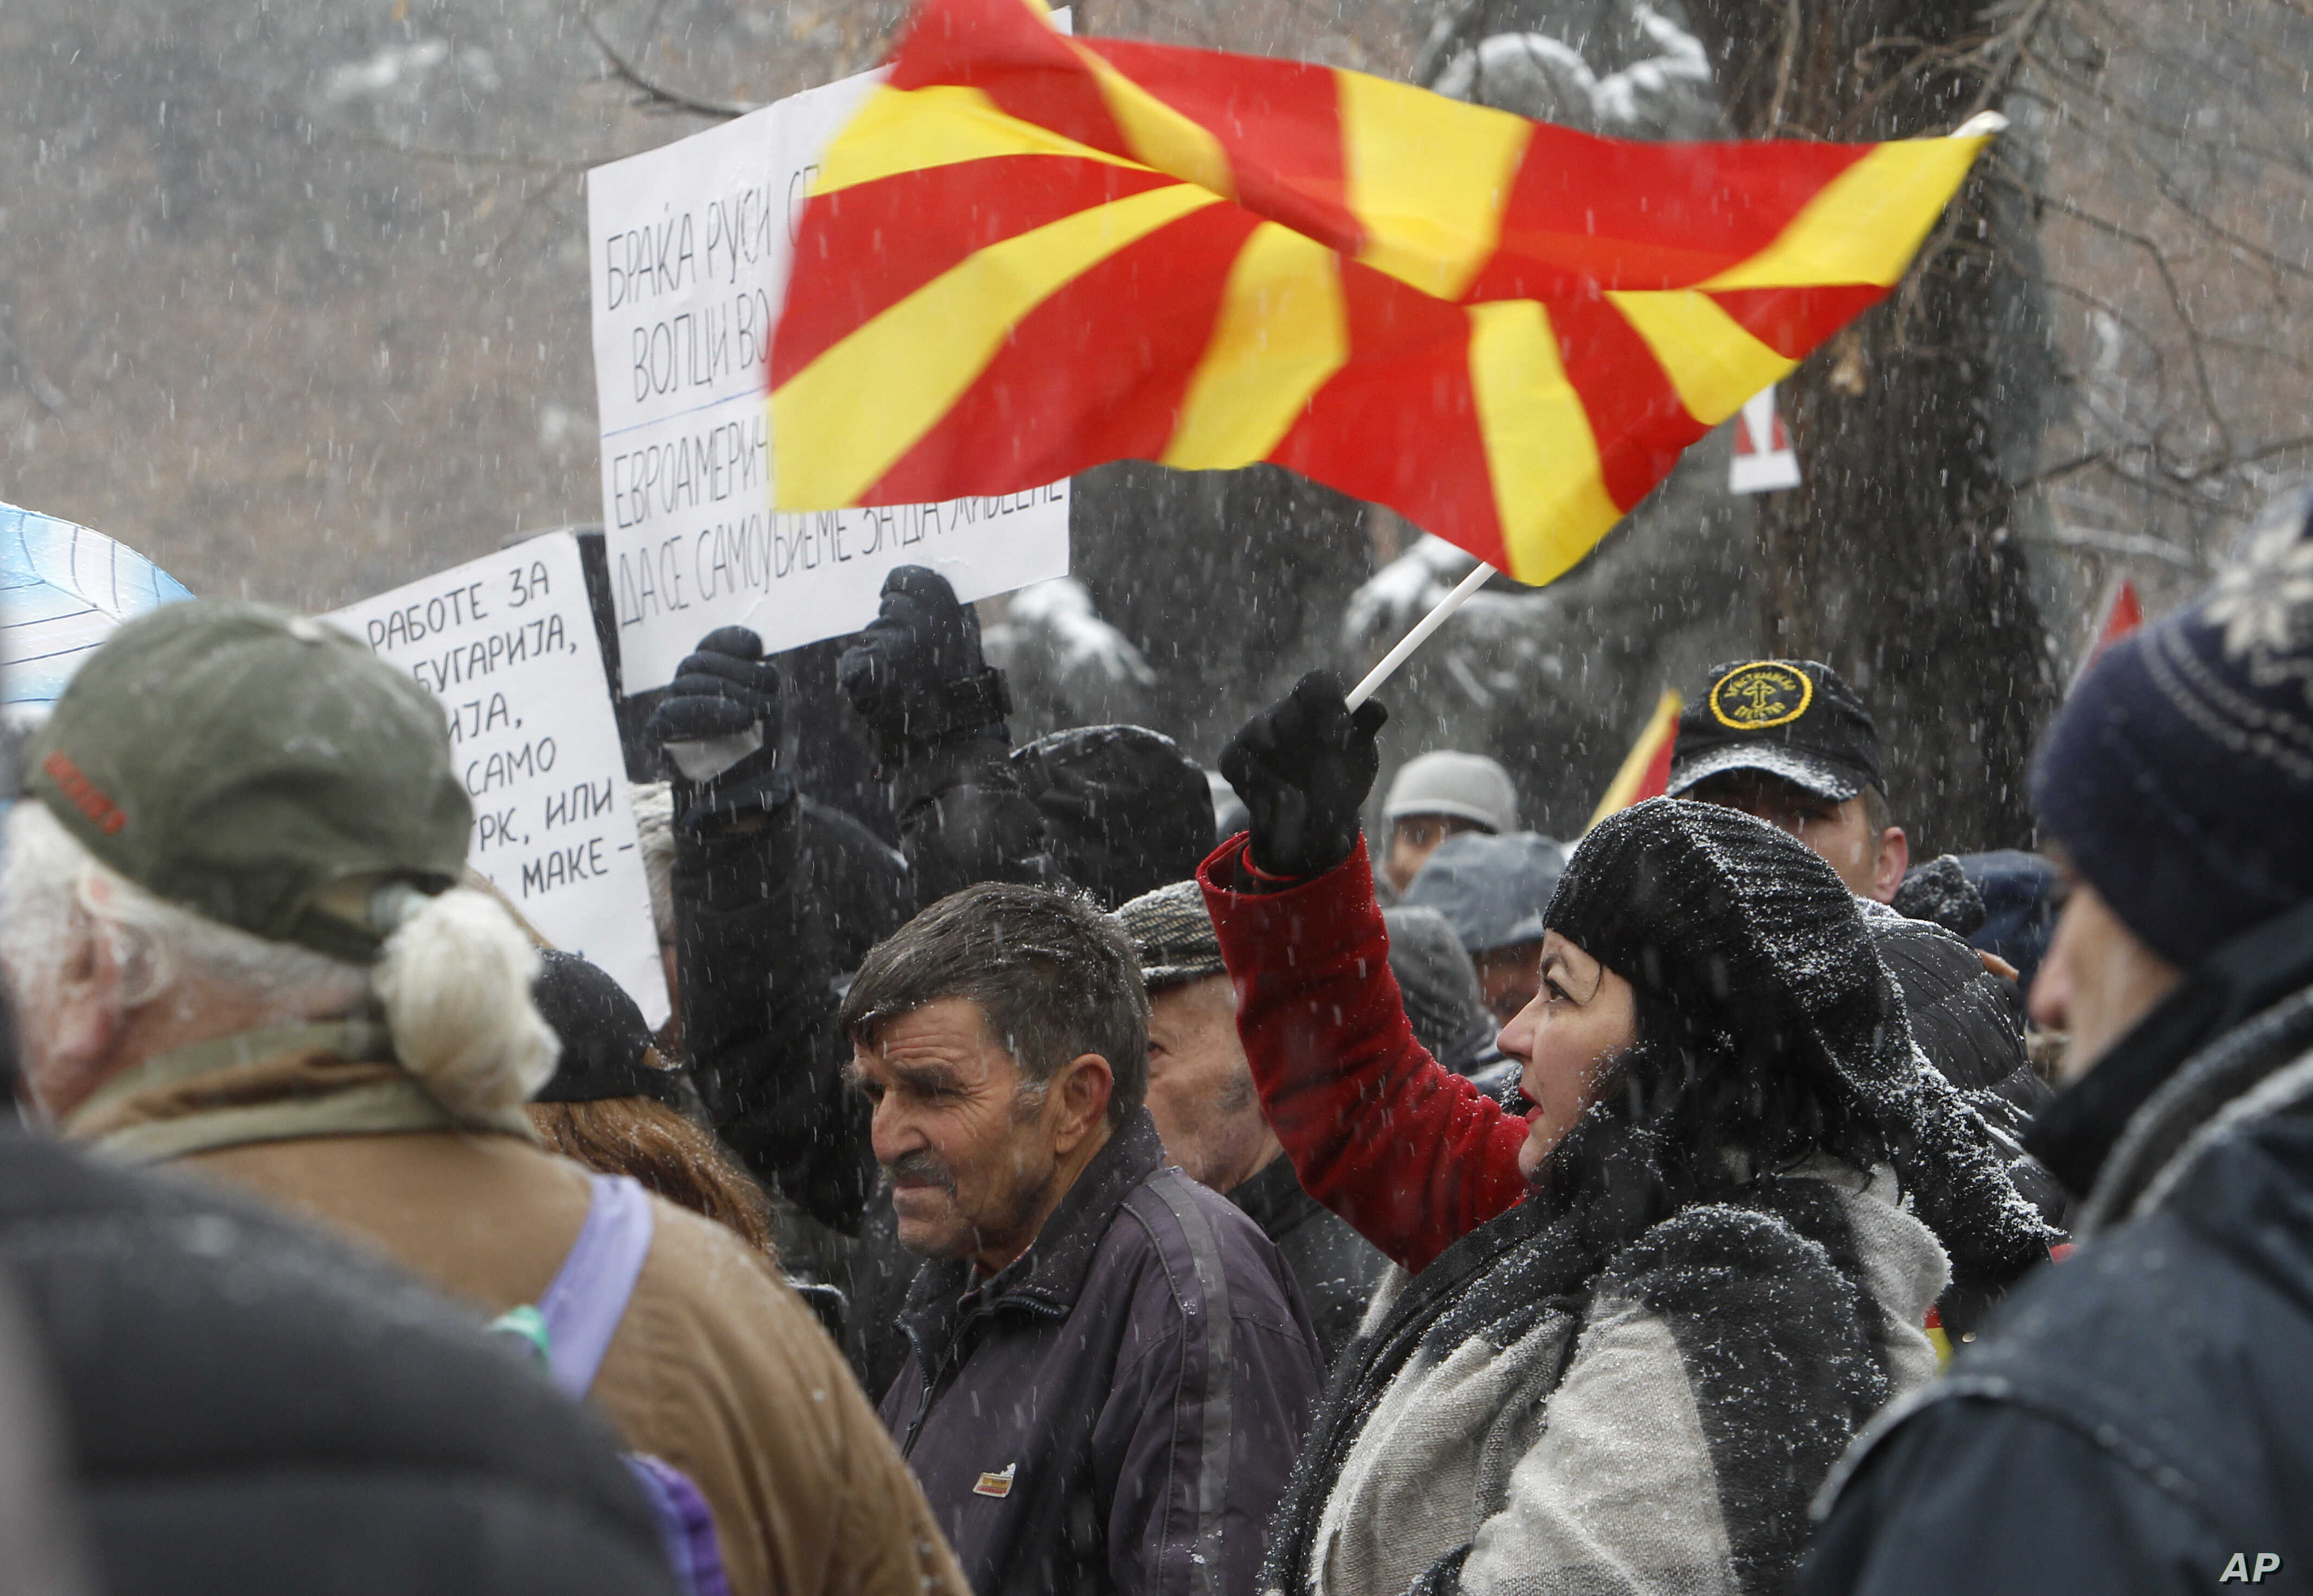 Opponents to the change of the country's constitutional name protest outside the parliament building prior to a session of the Macedonian Parliament in the capital Skopje, Jan. 9, 2019.